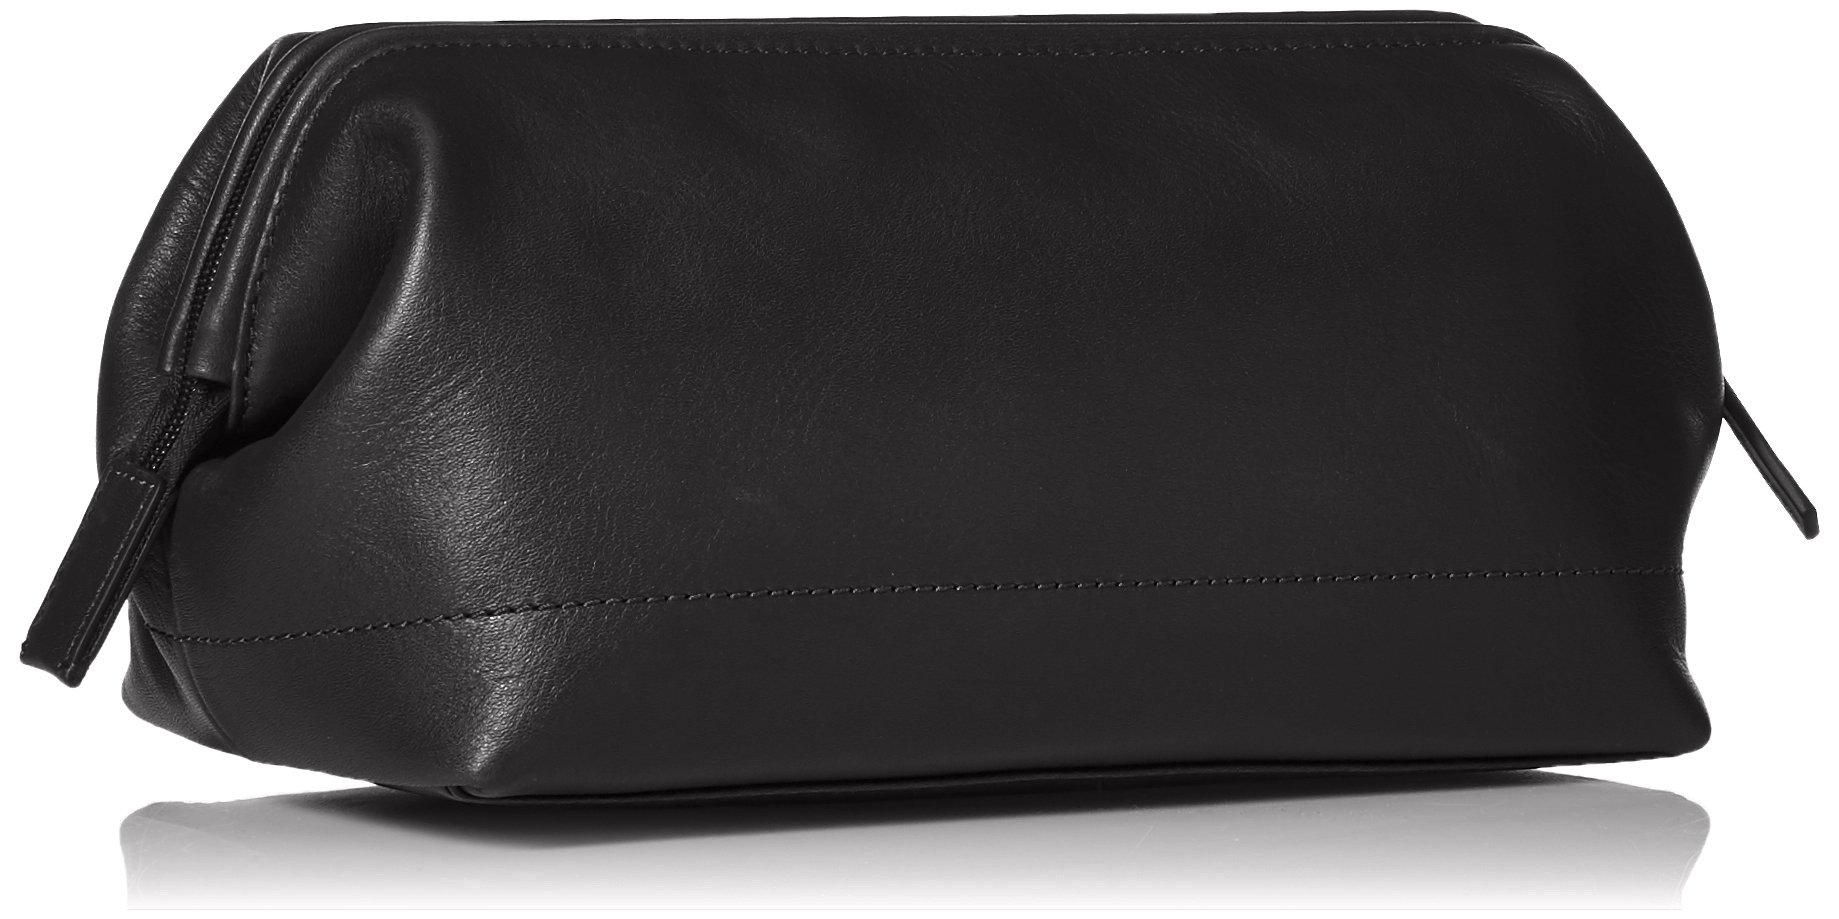 Fossil Men's Framed Shave Kit Black Accessory, -black, 10.3''L x 6''W x 5.5''H by Fossil (Image #2)